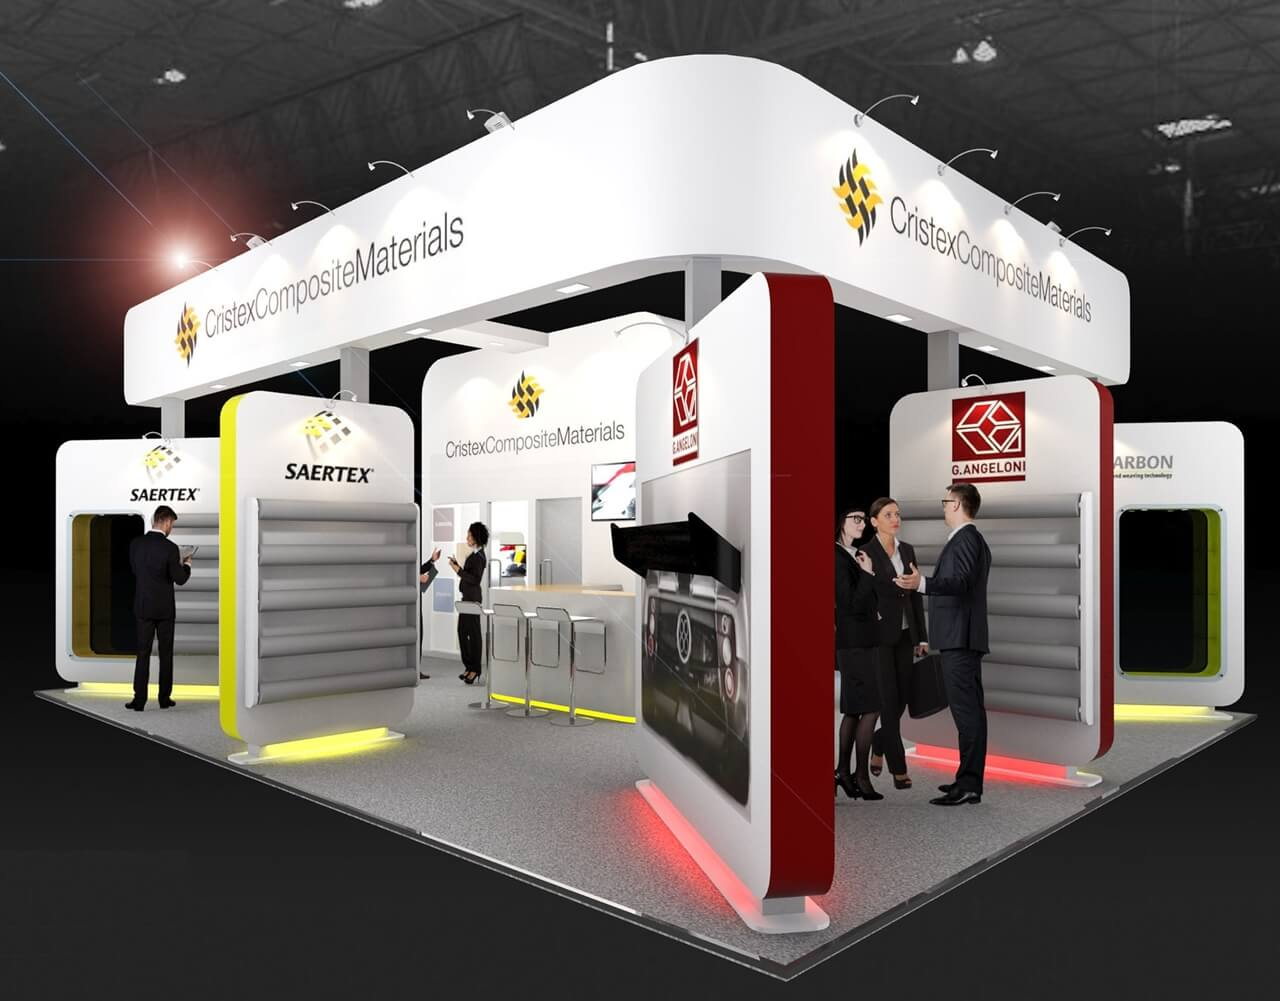 Exhibition Stand Design Sample : Exhibition stand design designers of stands